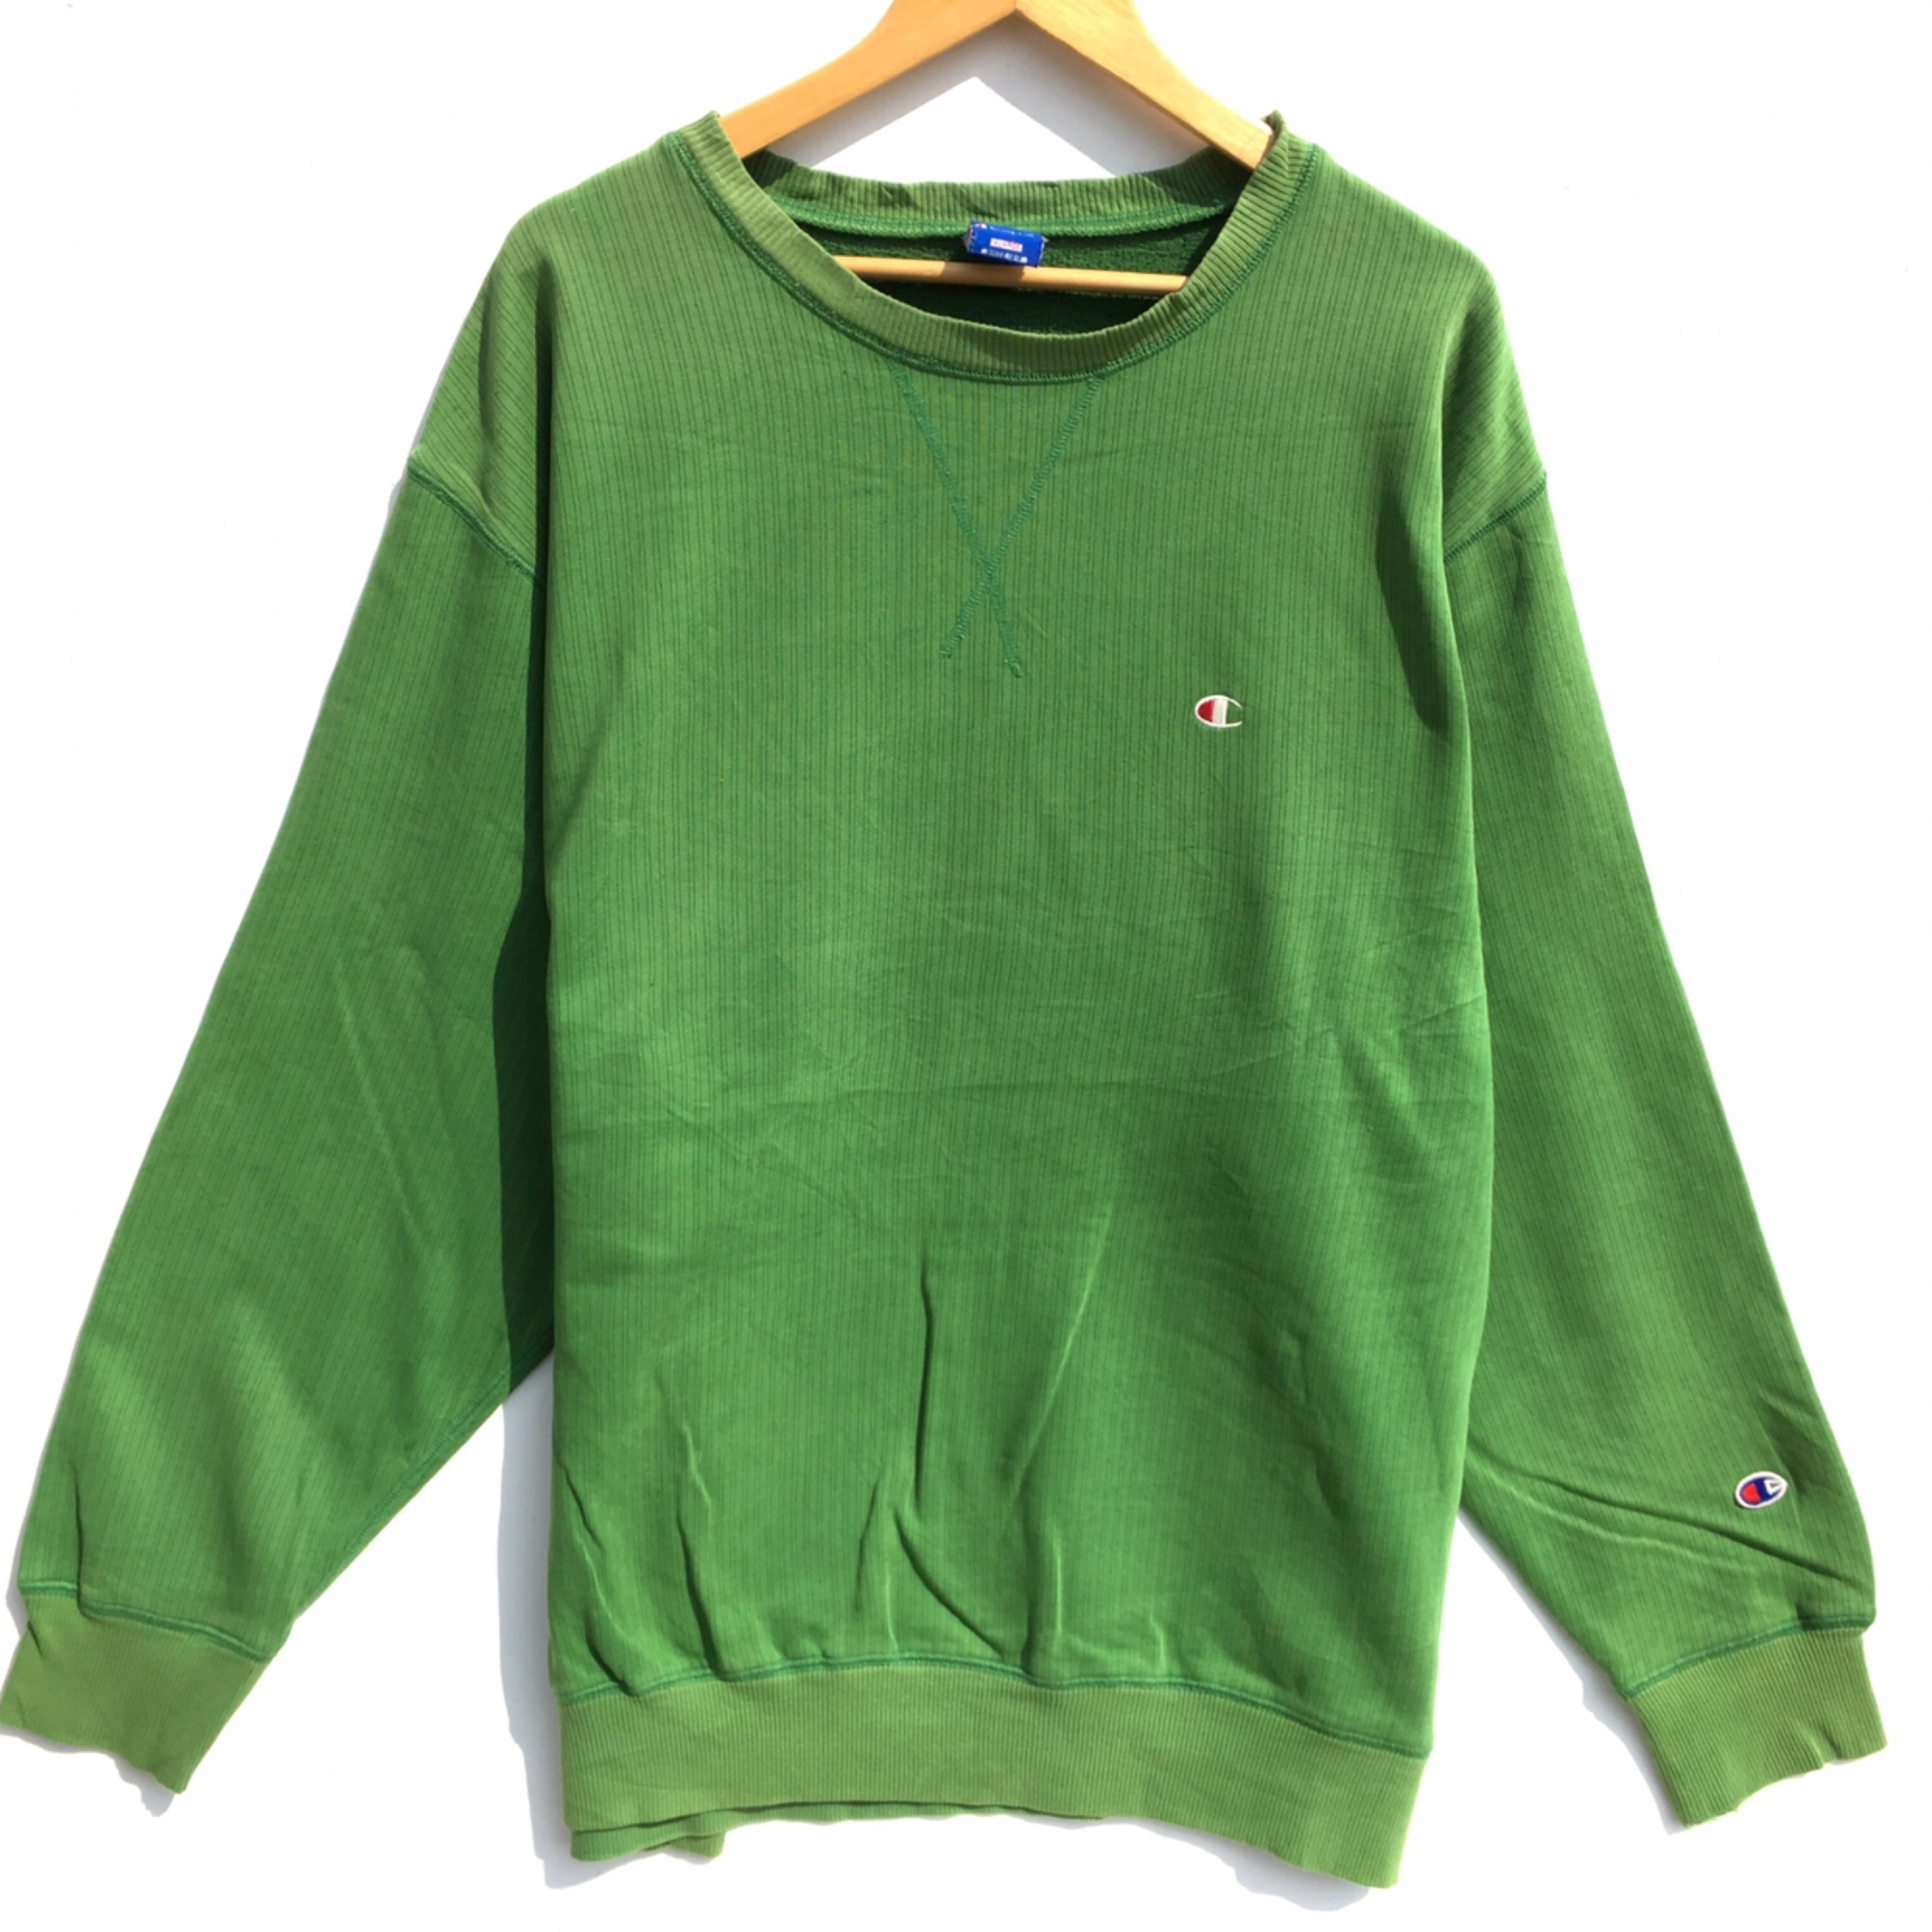 Vtg Champion Sweatshirt Green